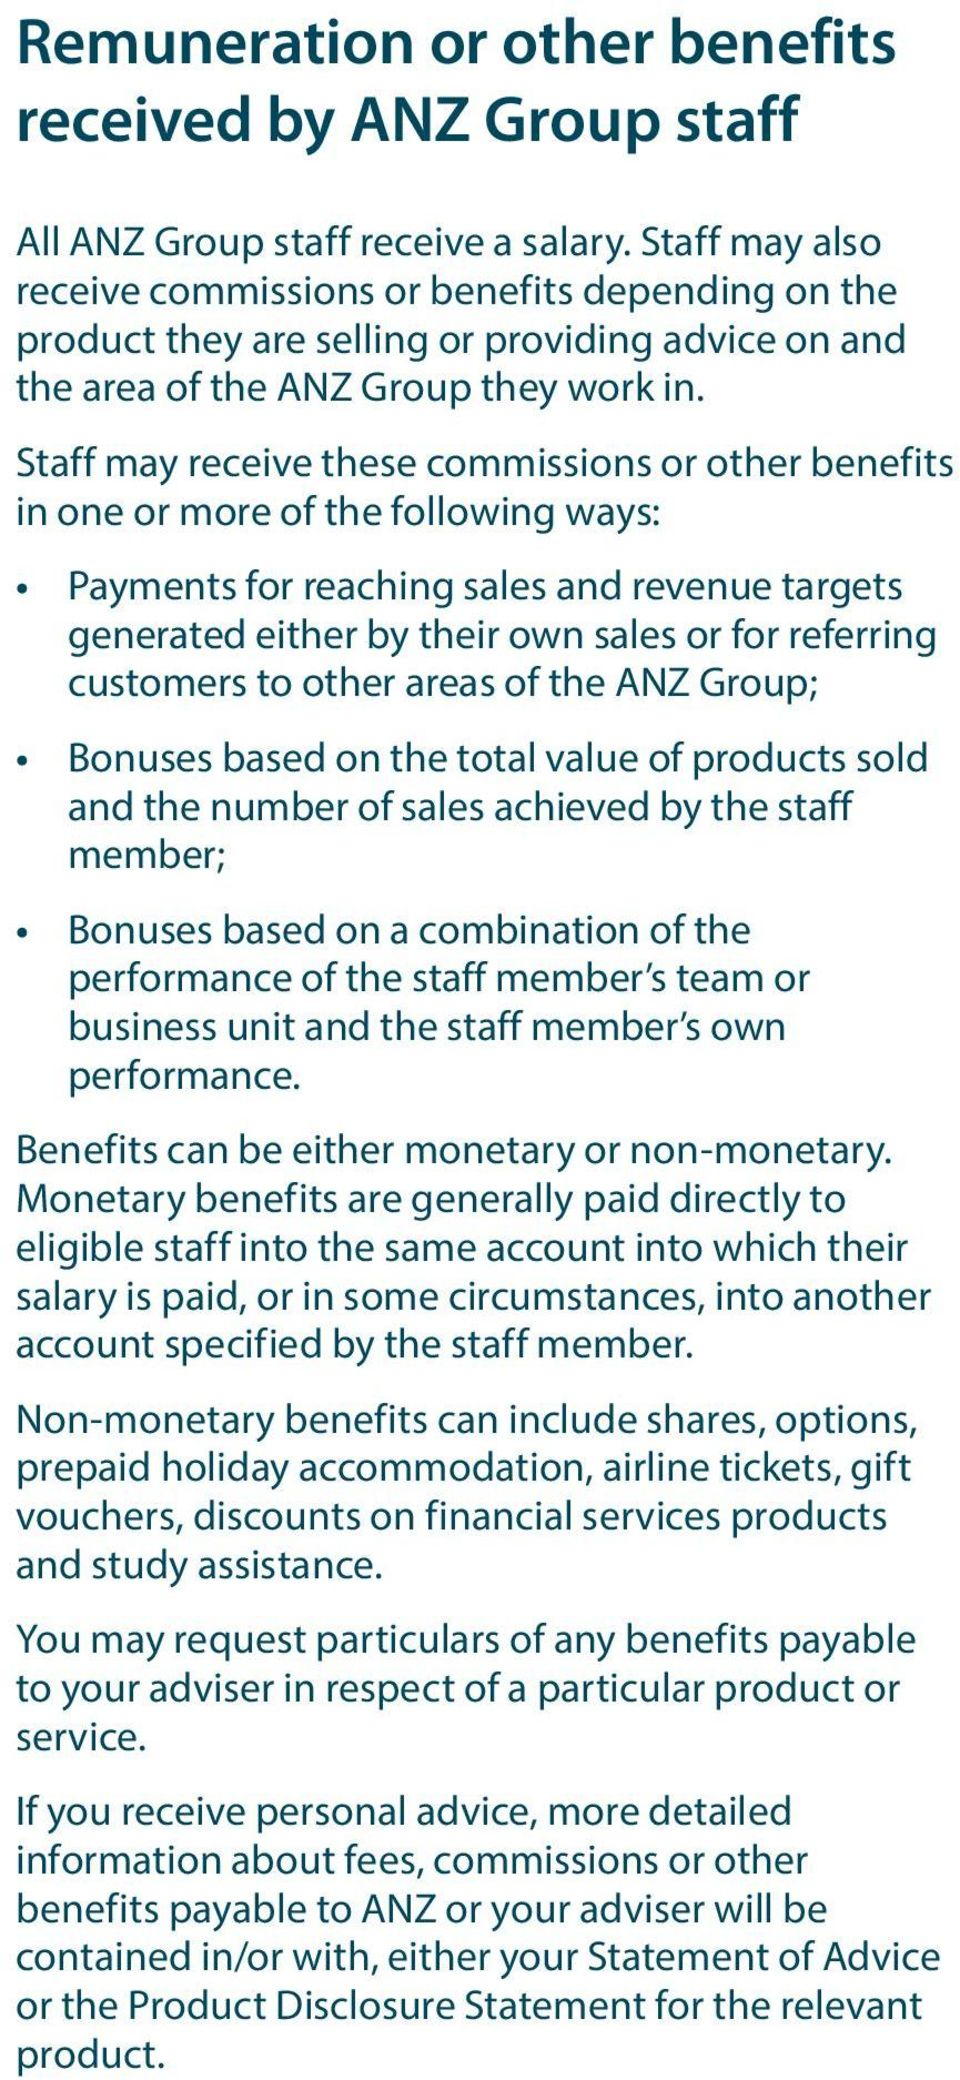 Staff may receive these commissions or other benefits in one or more of the following ways: Payments for reaching sales and revenue targets generated either by their own sales or for referring